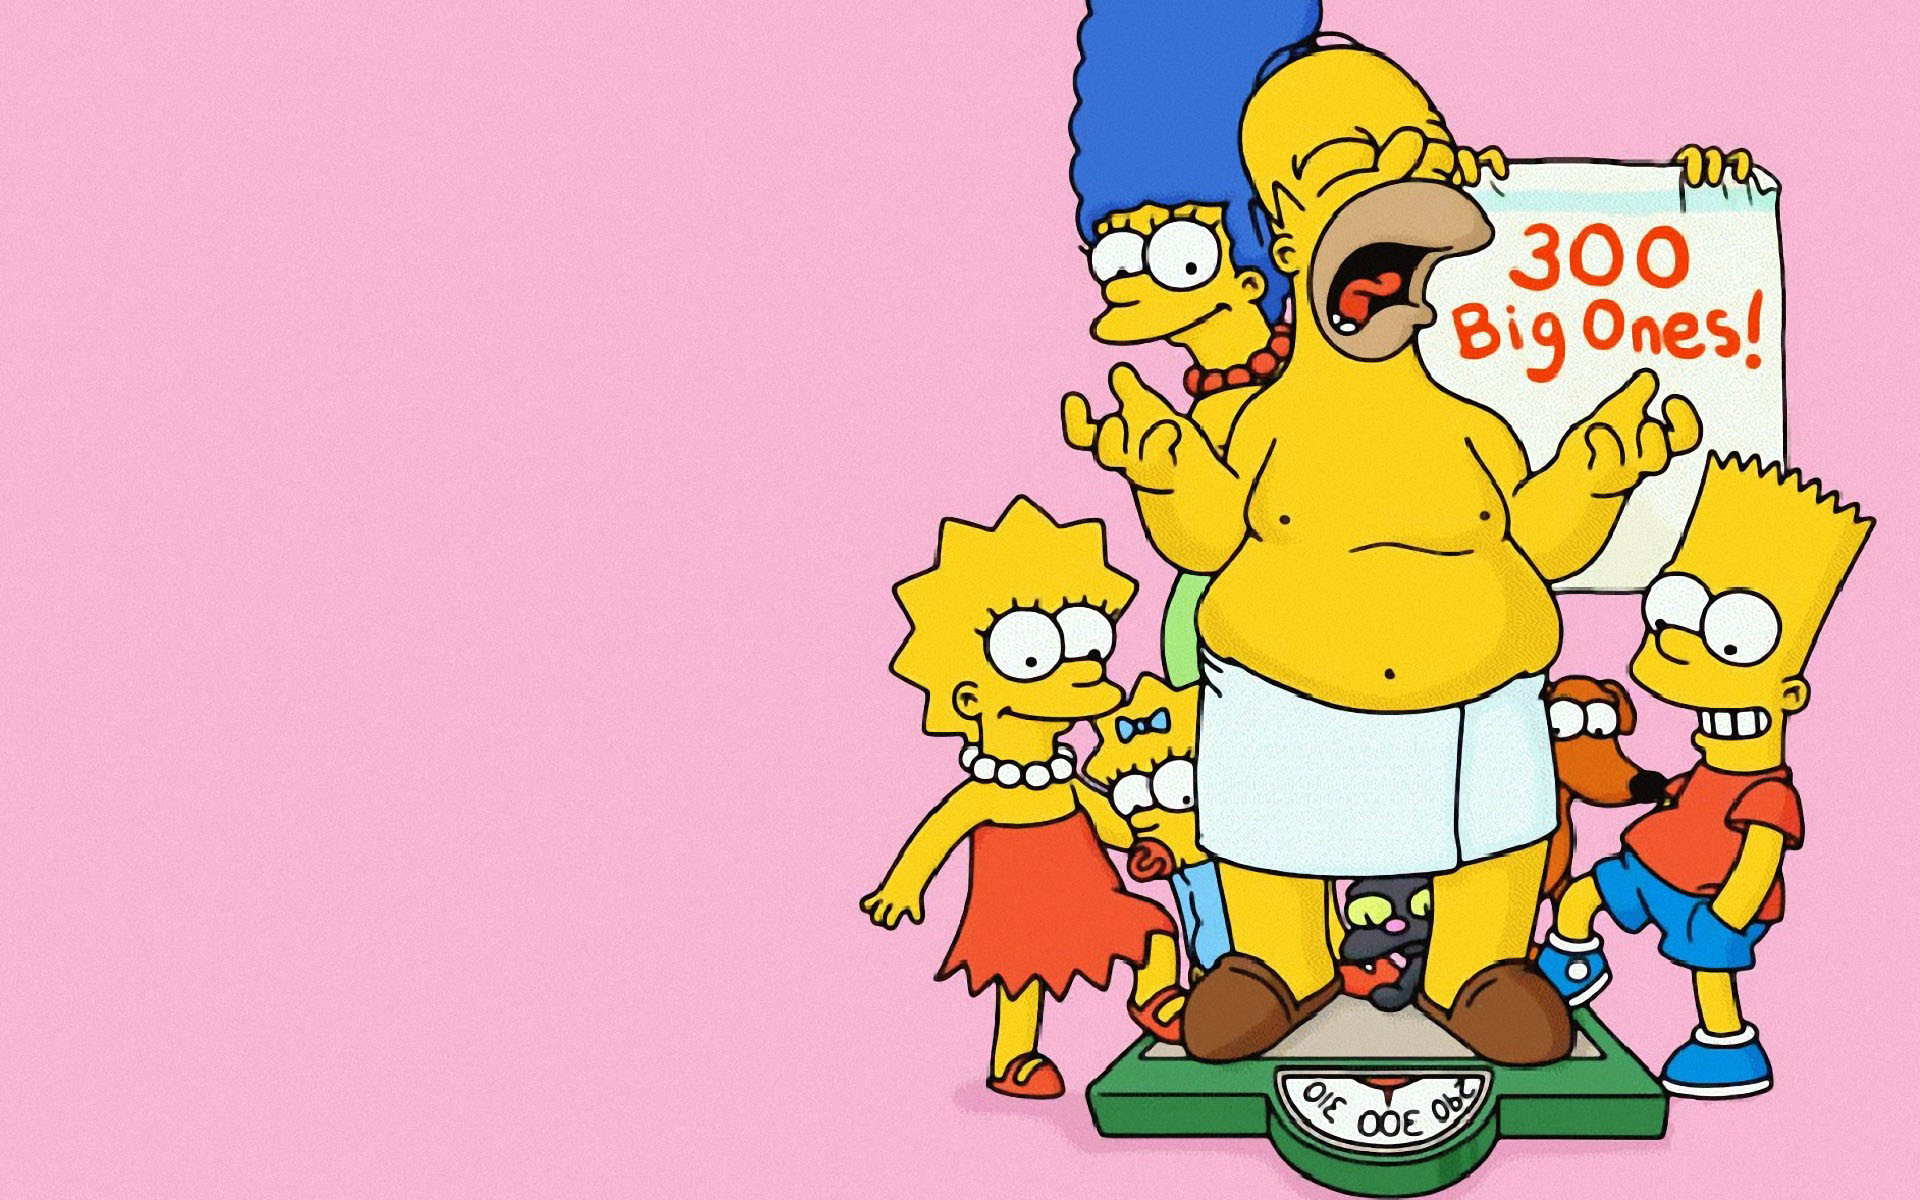 1920x1200 The Simpsons Family Wallpaper Image for MacBook - Cartoons Wallpapers The  Simpsons Family Funny ...